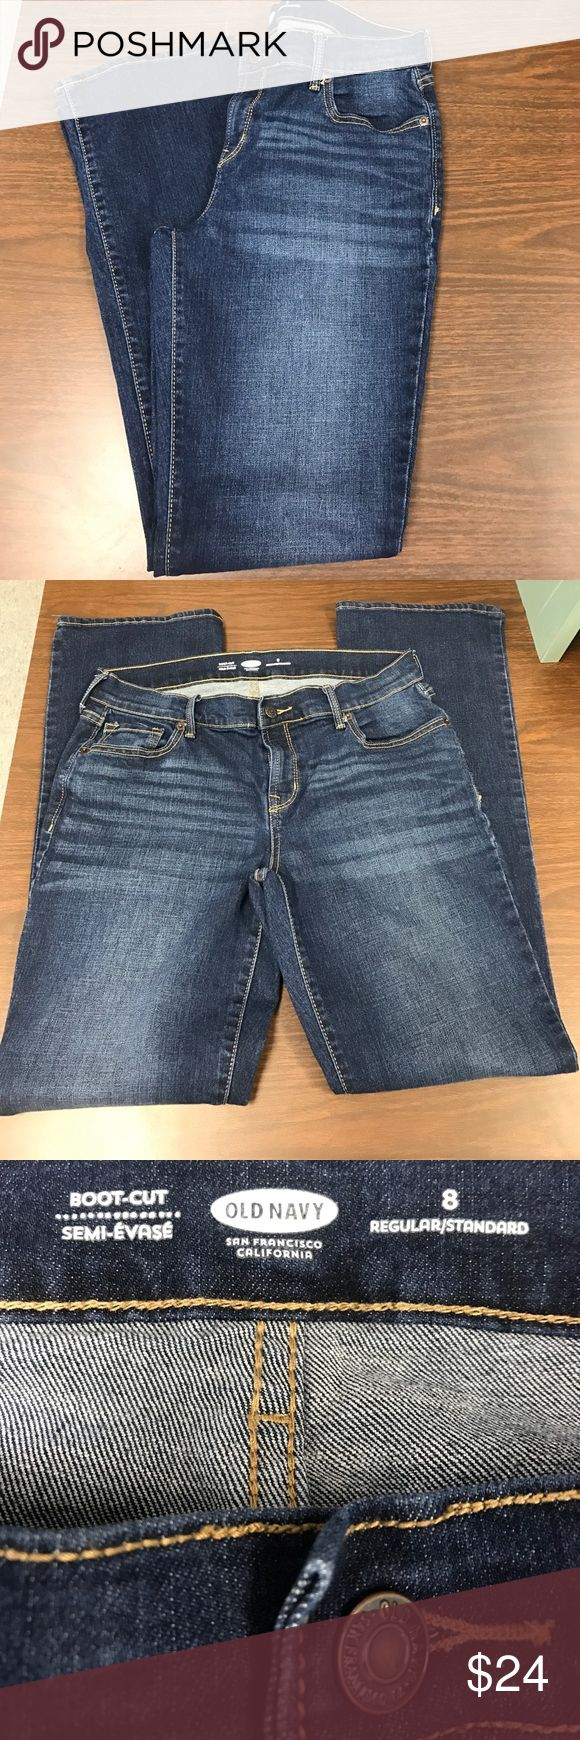 Old Navy Boot Cut Jeans Old Navy bot cut jeans size 8. These jeans may have been worn twice. Practically new and in excellent condition. Old Navy Jeans Boot Cut